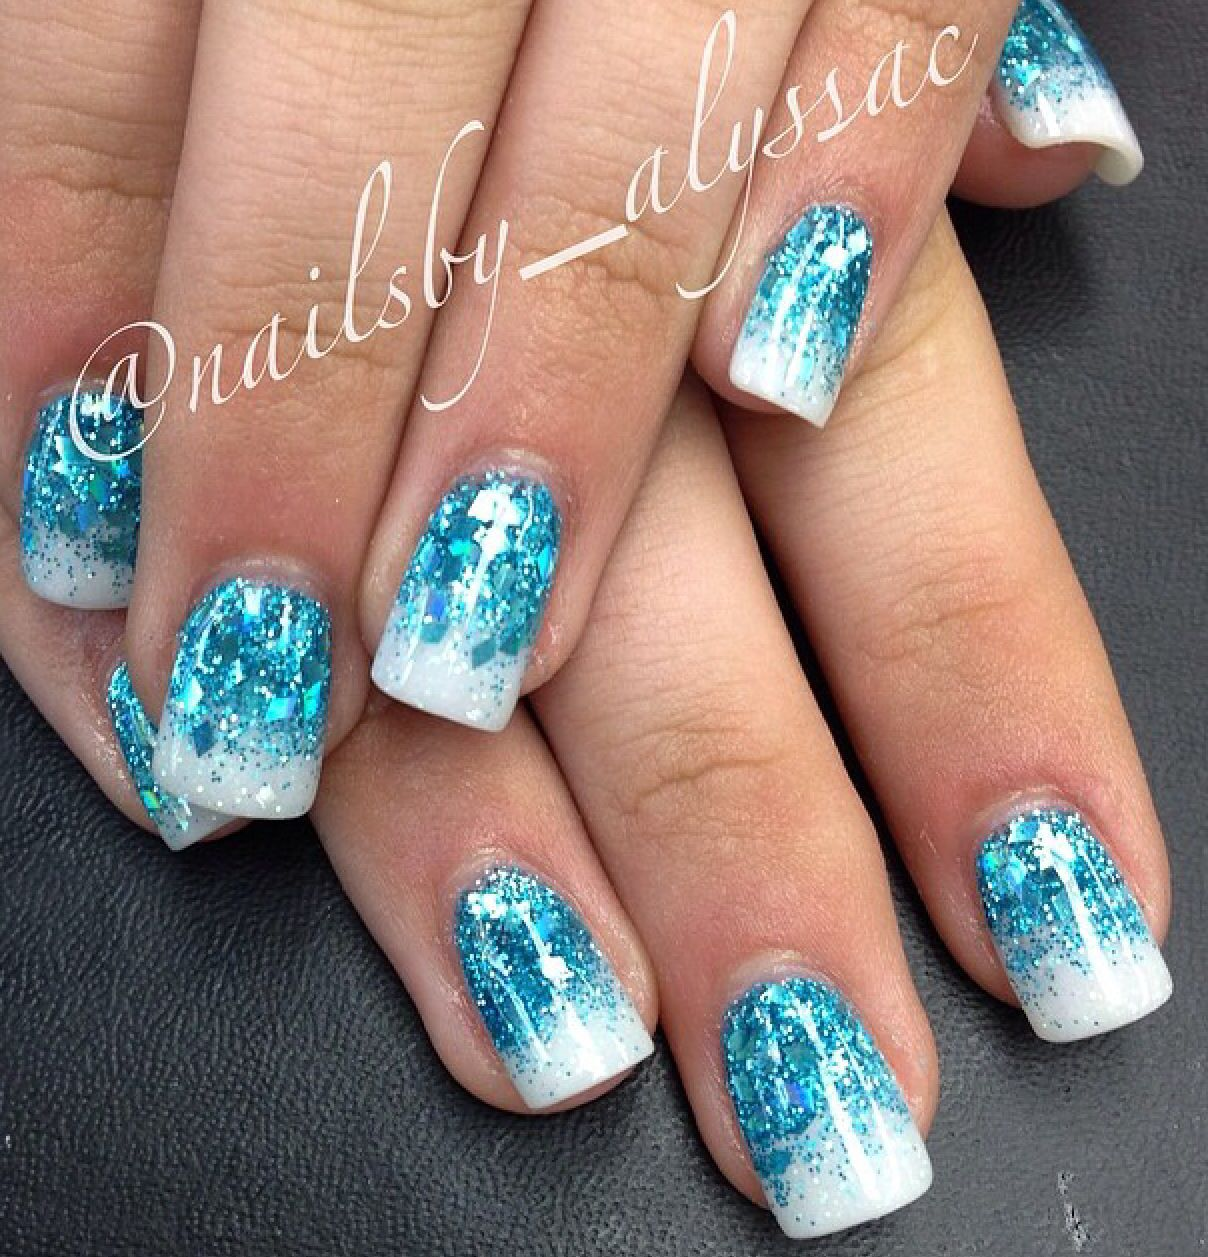 Full color nail art - Image Via Pieces Of Amazing Frozen Nail Art Image Via Frozen Inspired Nails Ice Blue Glitter Faded Into White Glitter Acrylics Solid Color